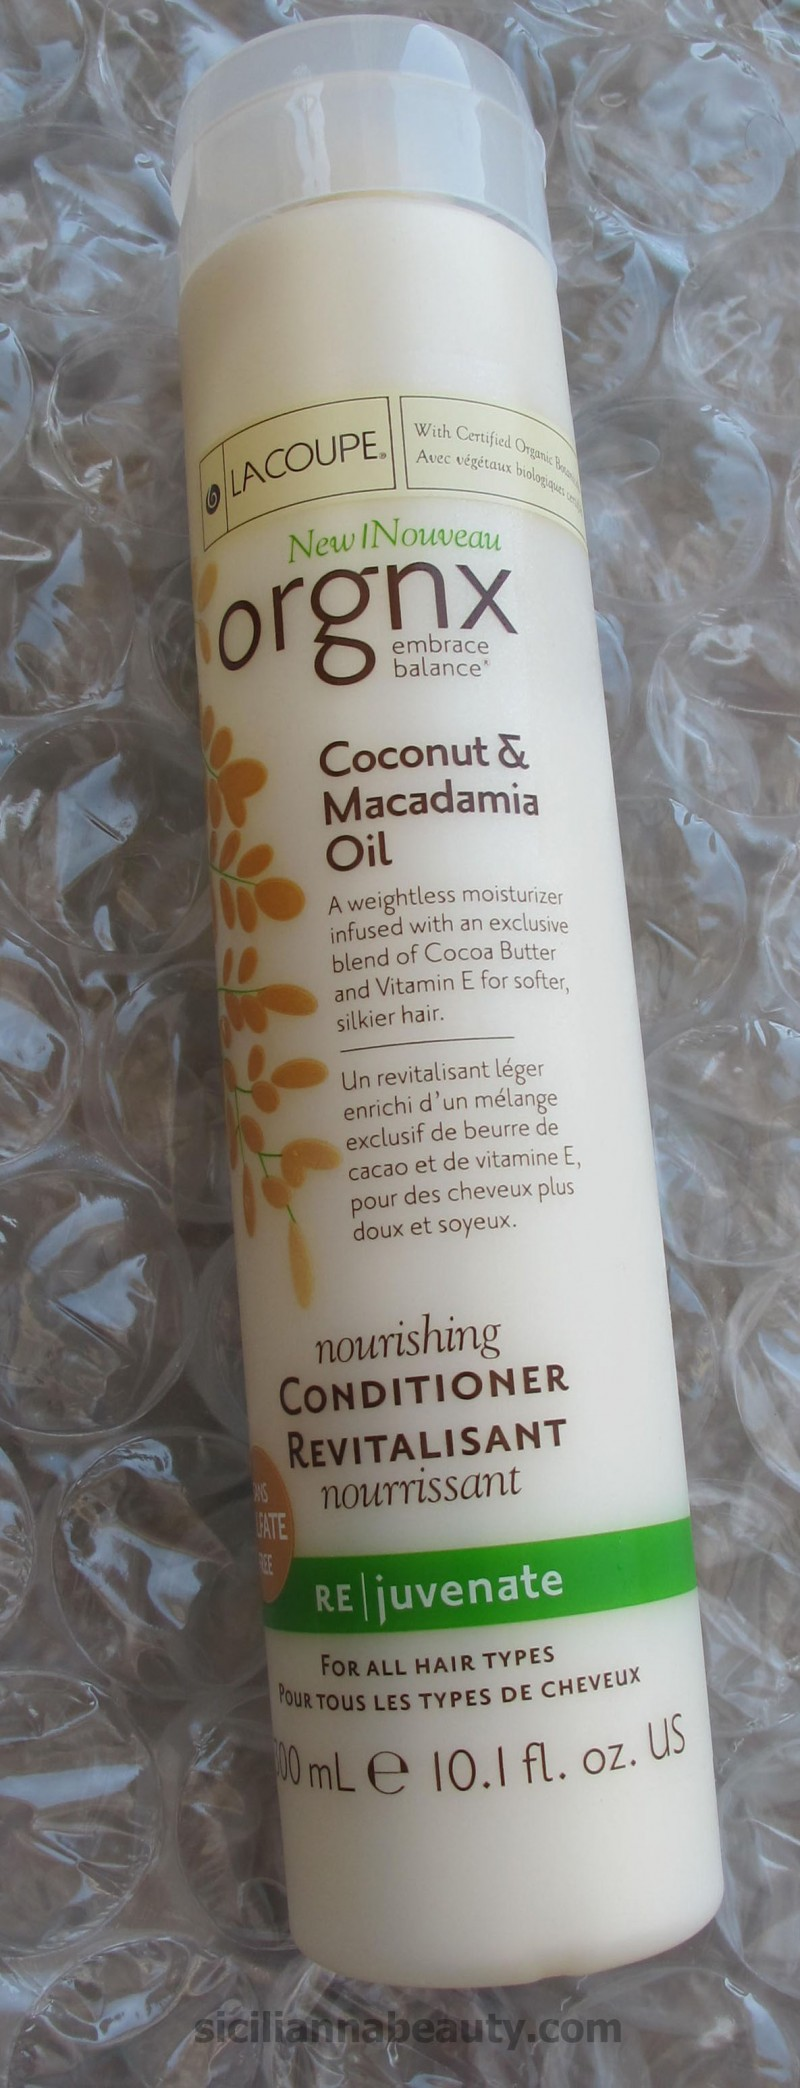 REVIEW: LaCoupe Orgnx Coconut and Macadamia Oil Nourishing Conditioner